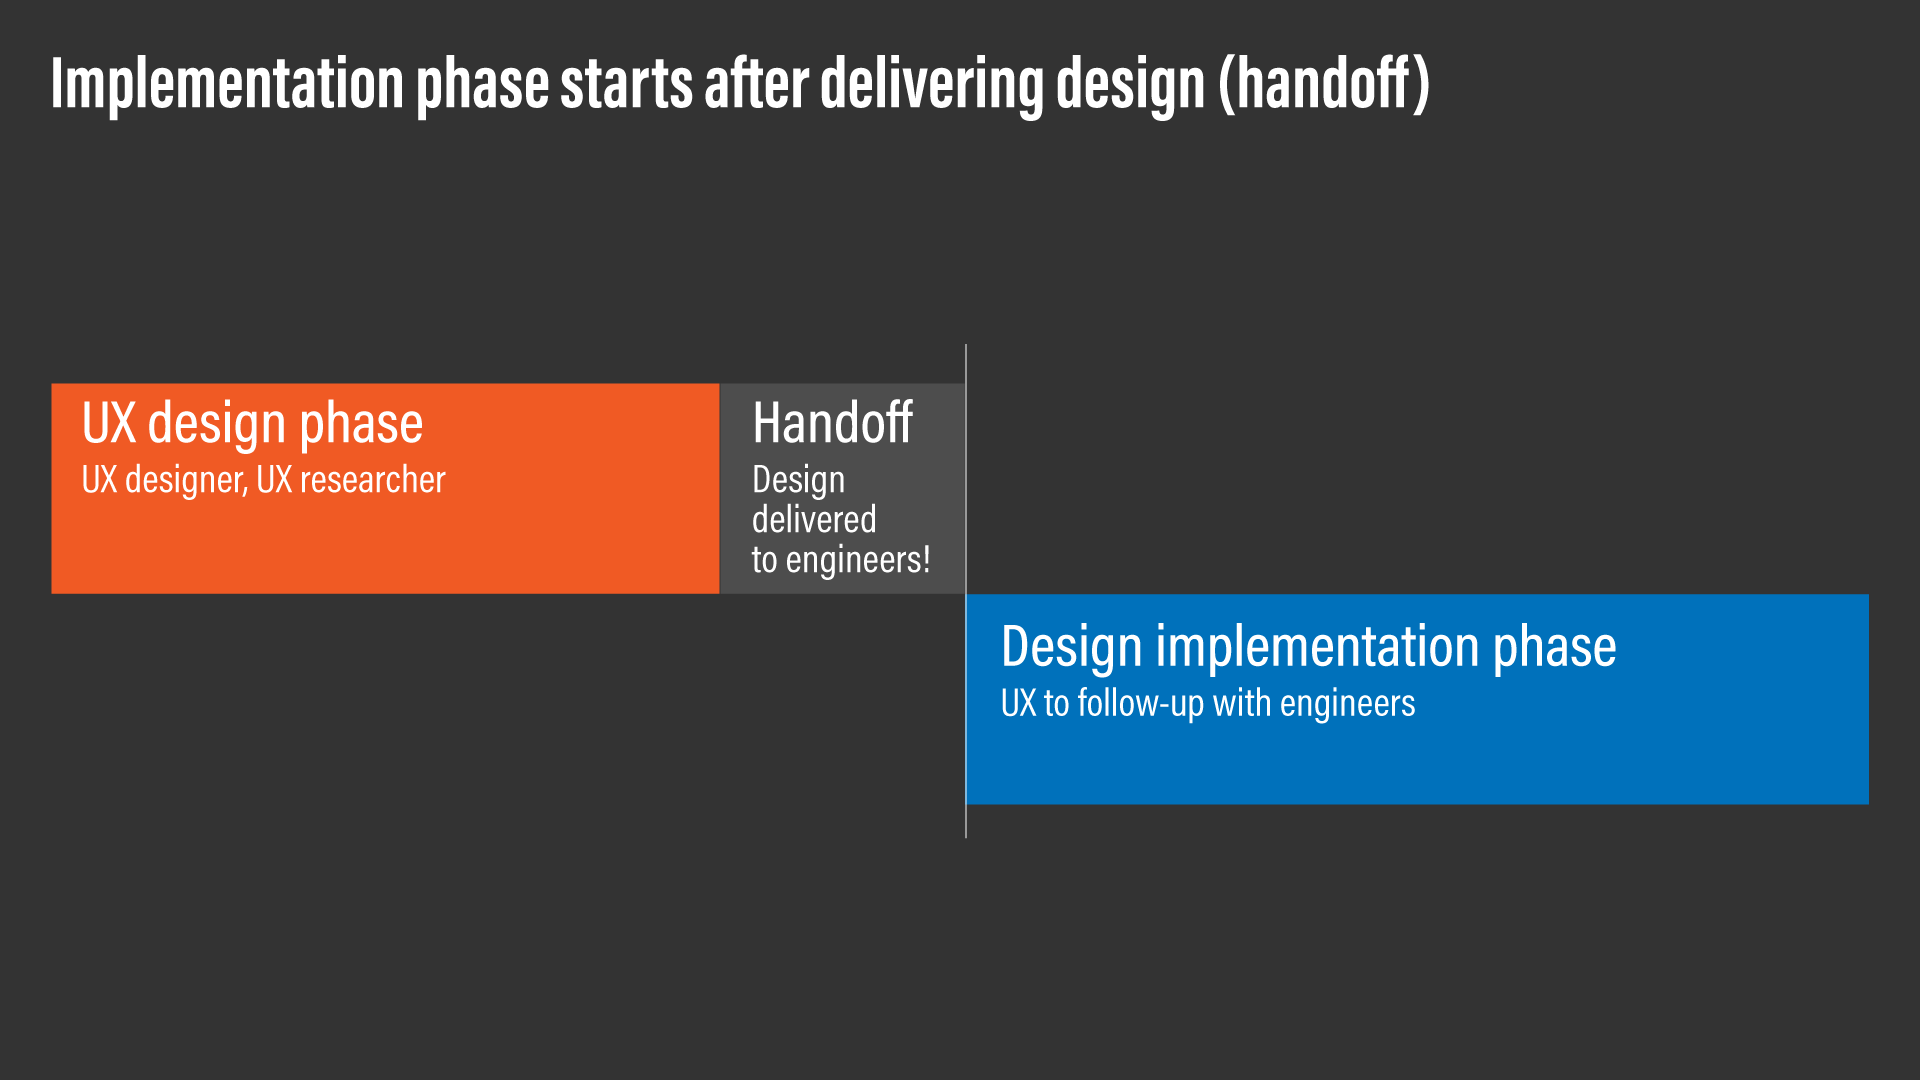 A diagram showing that implementation phase starts after a design handoff.